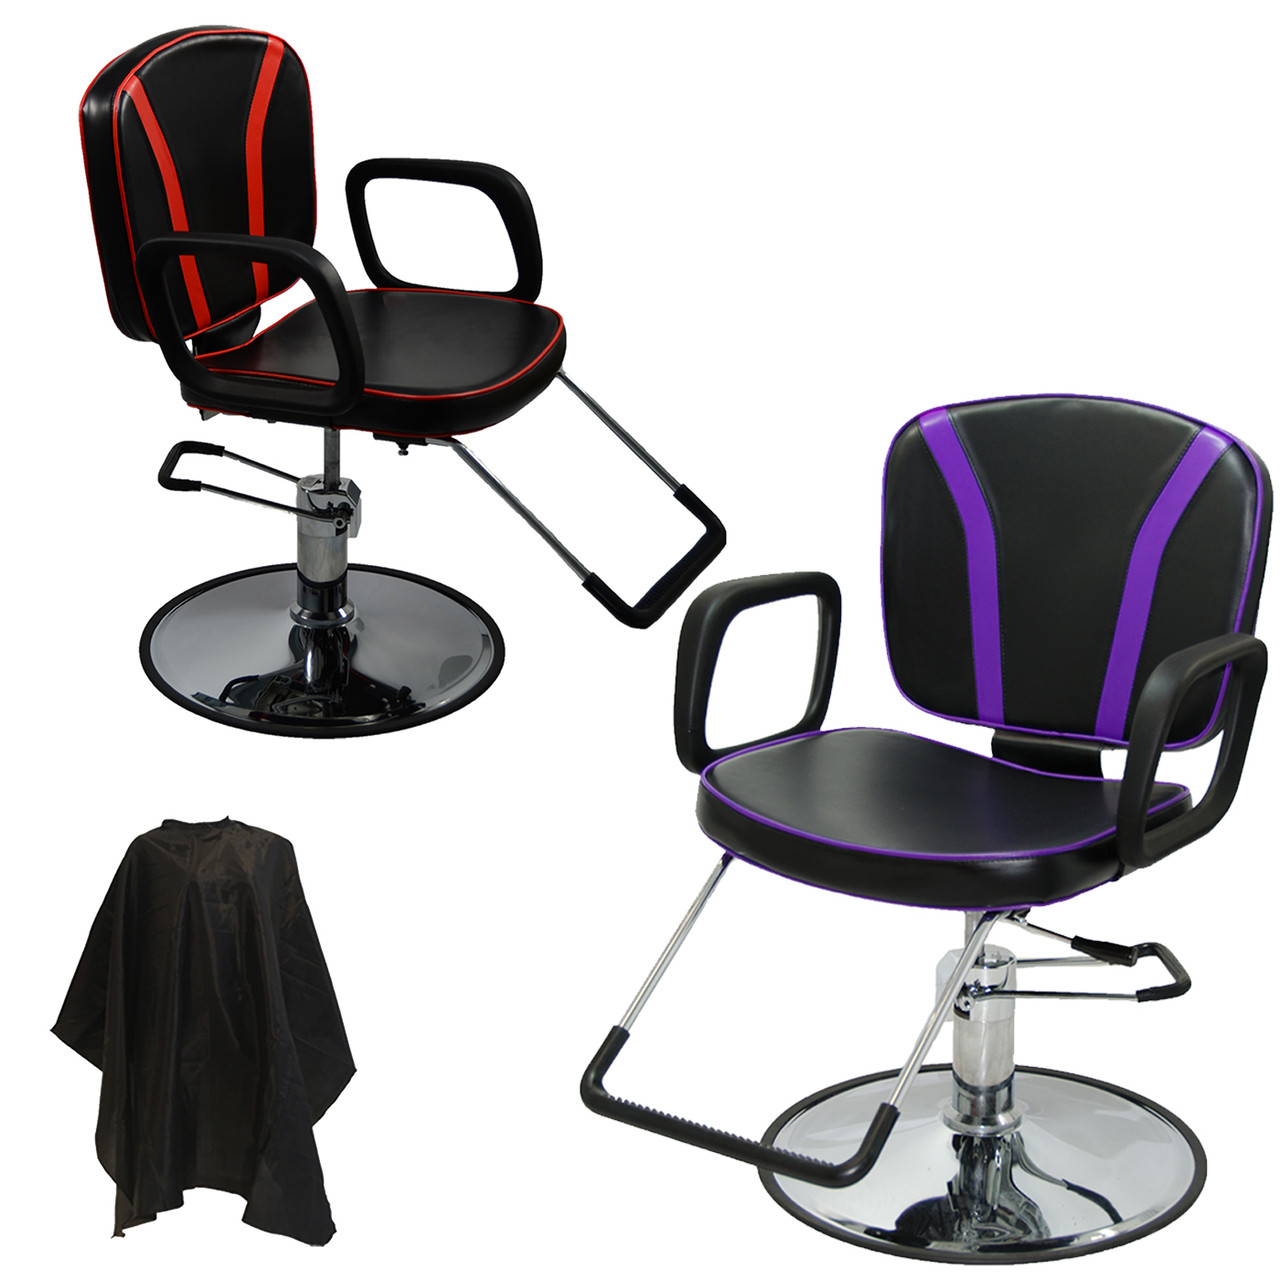 Beauty Salon Chair Pro 31109a Reclining Styling Chair